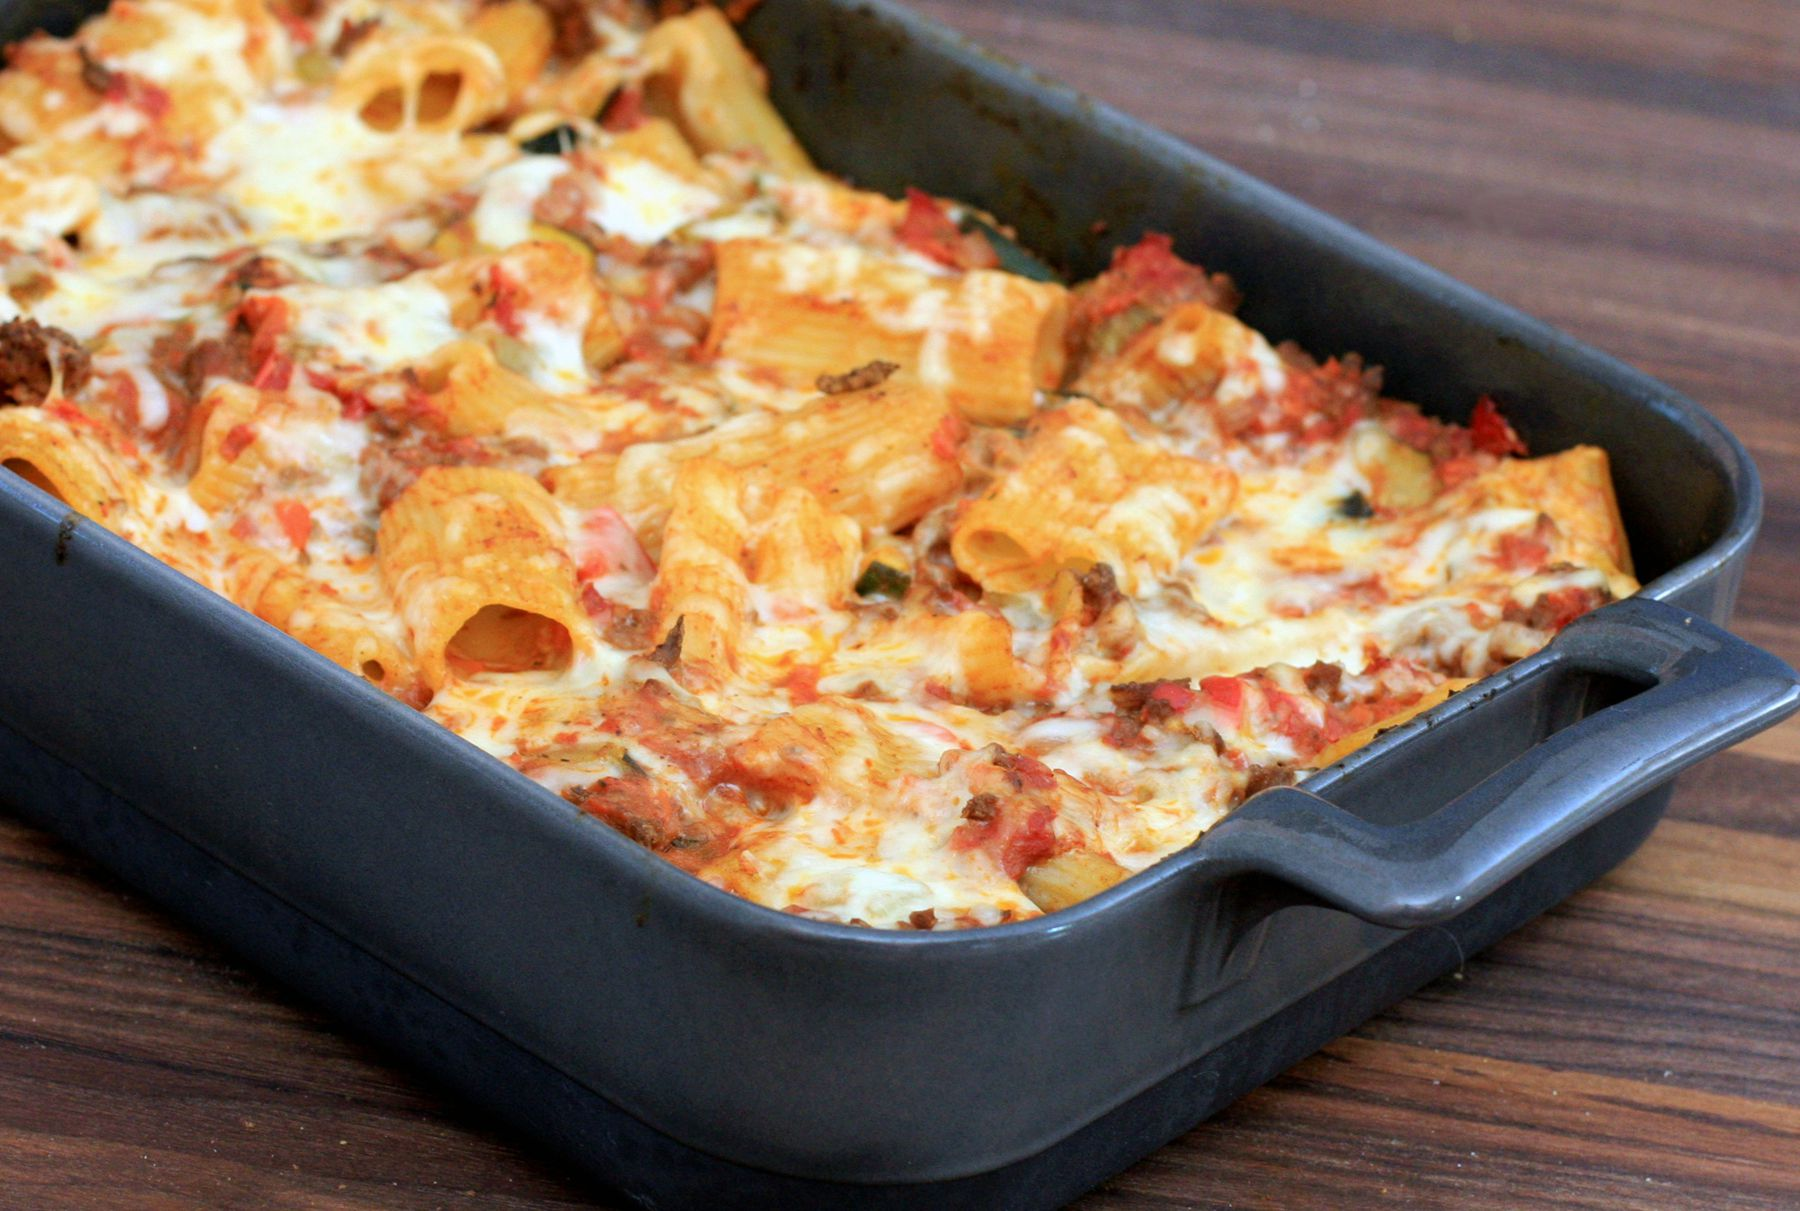 Dig Into This Cheesy Rigatoni Bake With Ground Beef and Vegetables